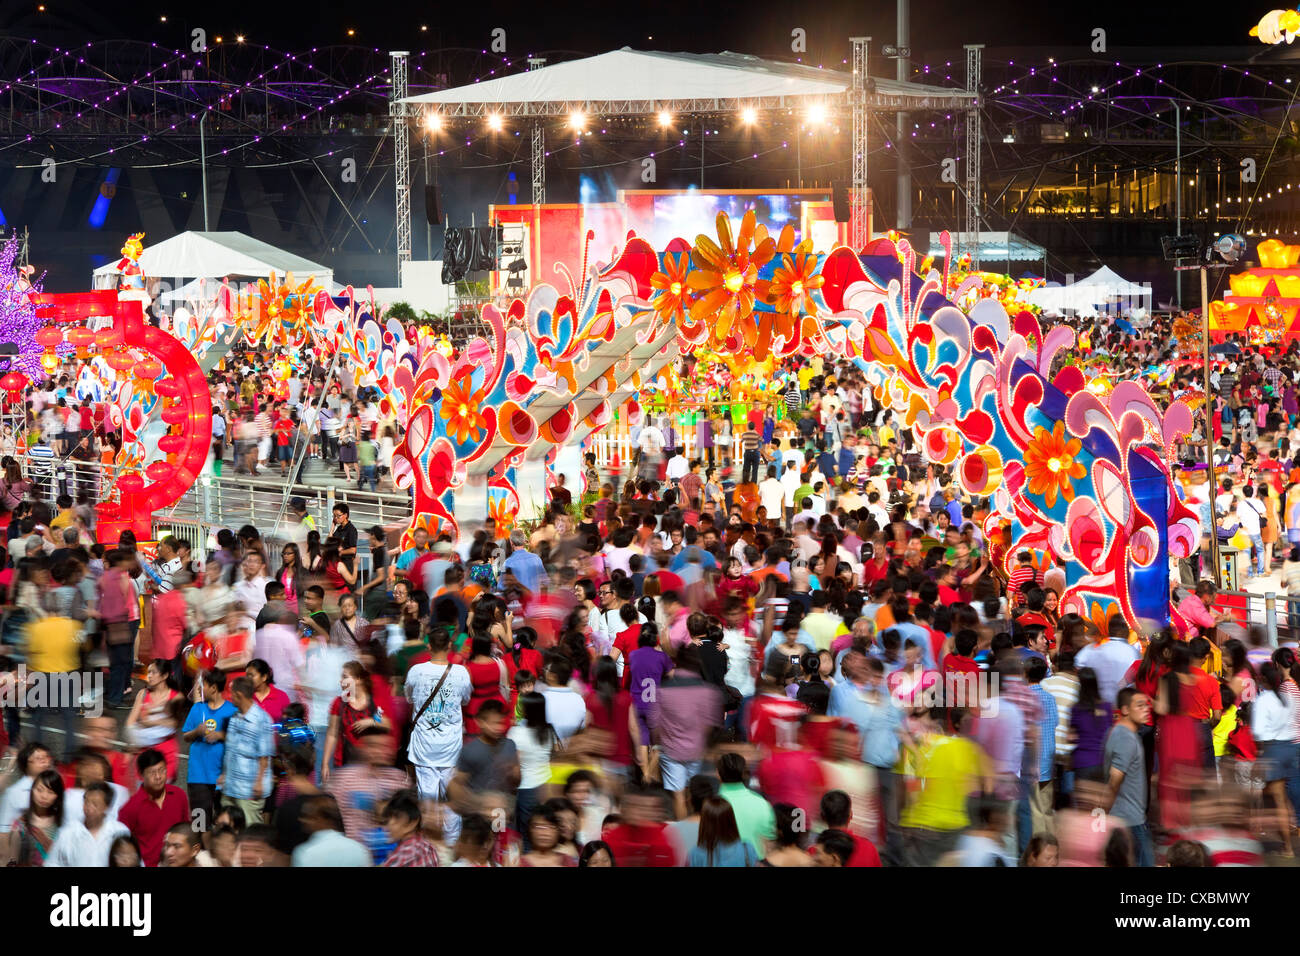 River Hongbao decorations for Chinese New Year celebrations at Marina Bay, Singapore, Southeast Asia, Asia Stock Photo